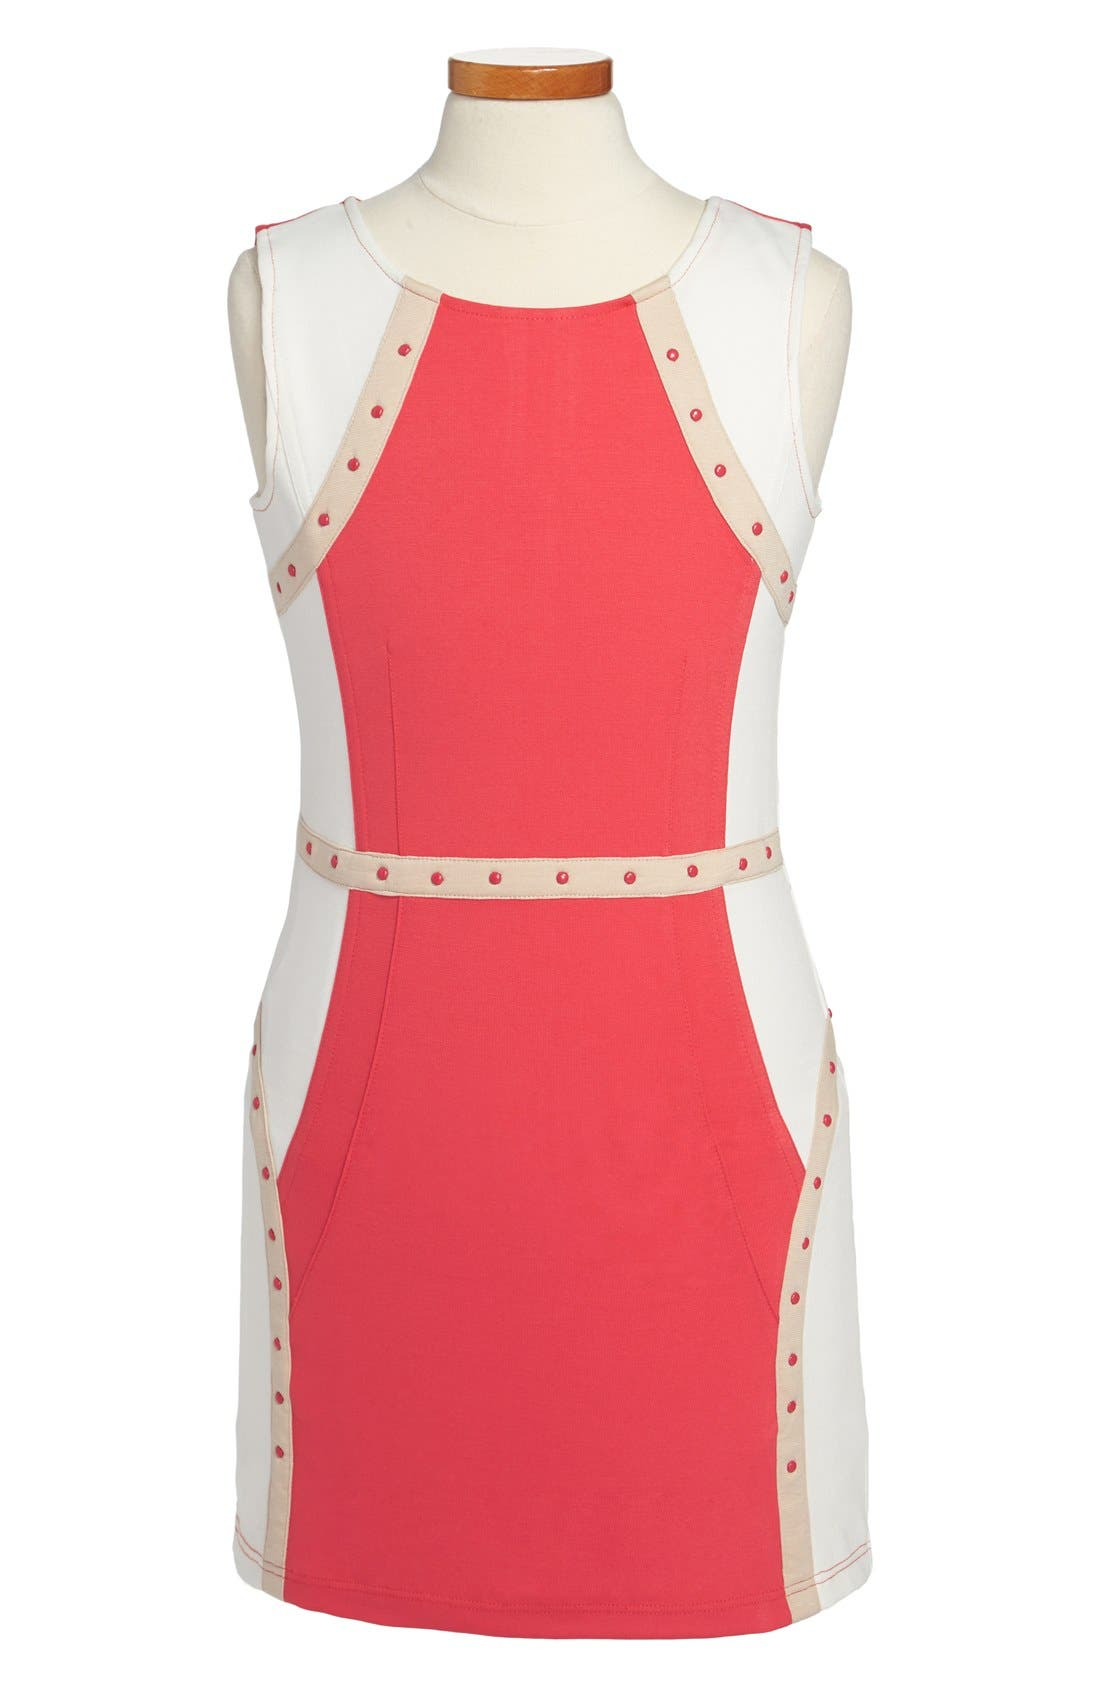 Alternate Image 1 Selected - Laundry by Shelli Segal 'Cindy' Studded Sheath Dress (Big Girls)